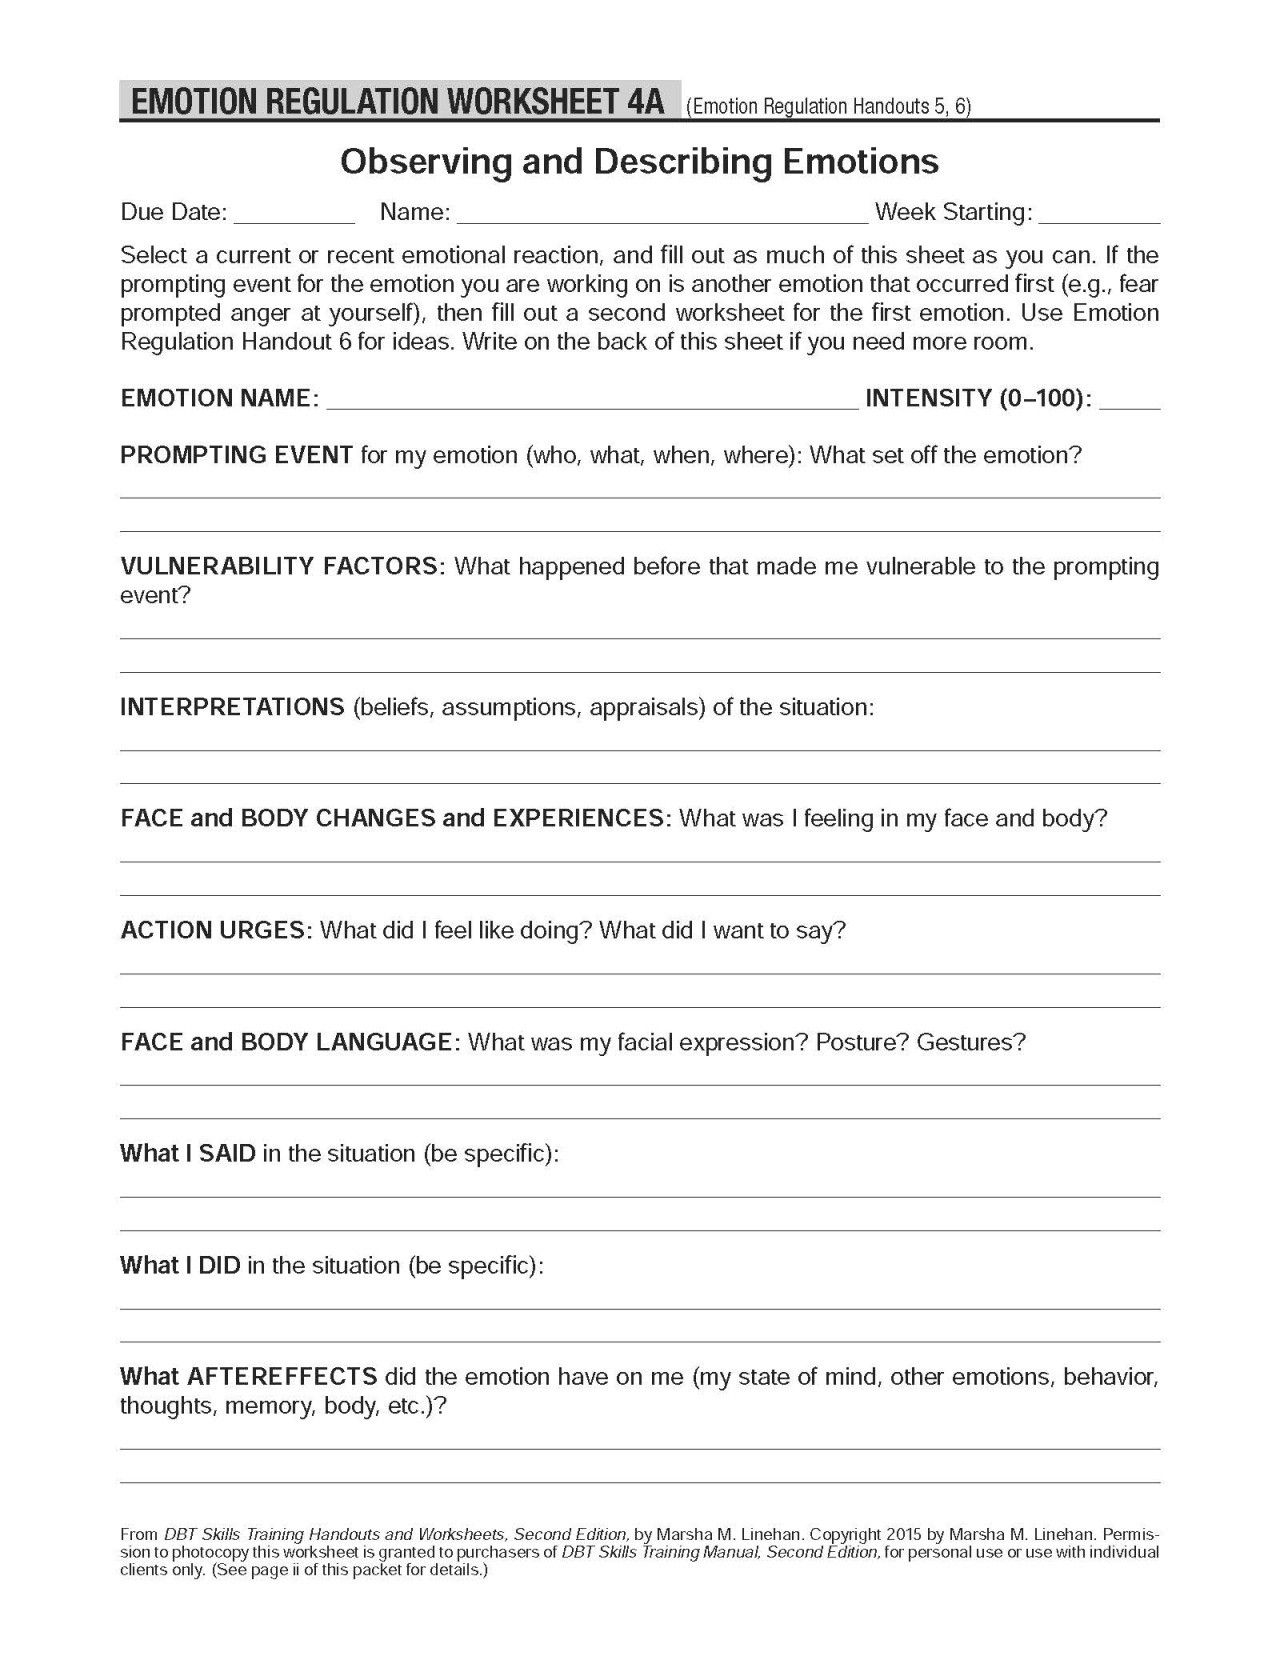 5 New Motivational Interviewing Worksheets In